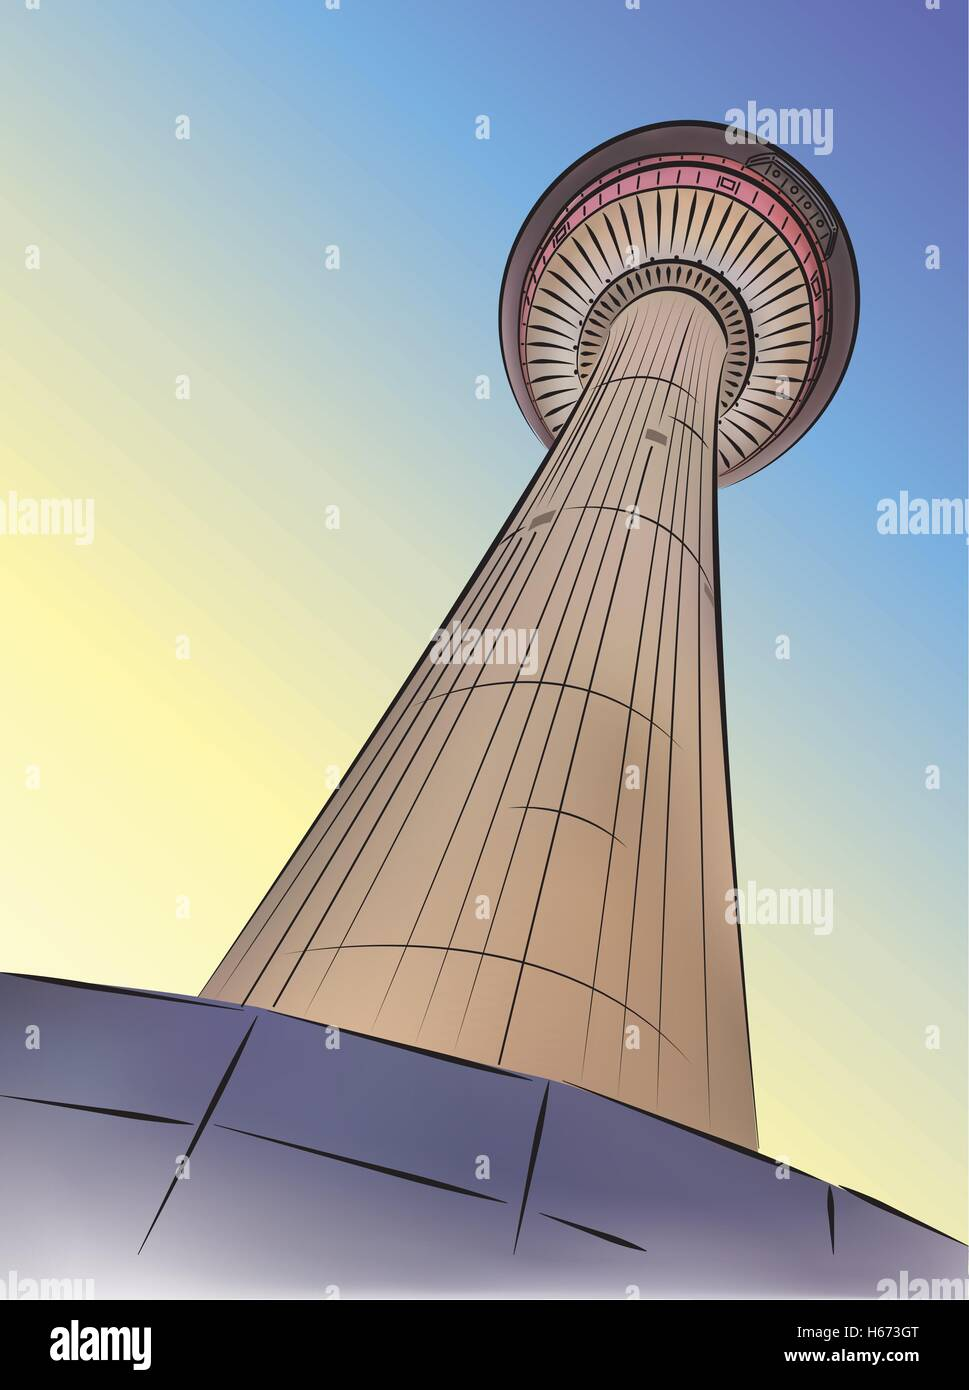 Looking up at the Calgary Tower, in Downtown Calgary, Alberta, Canada - vector illustration. - Stock Vector